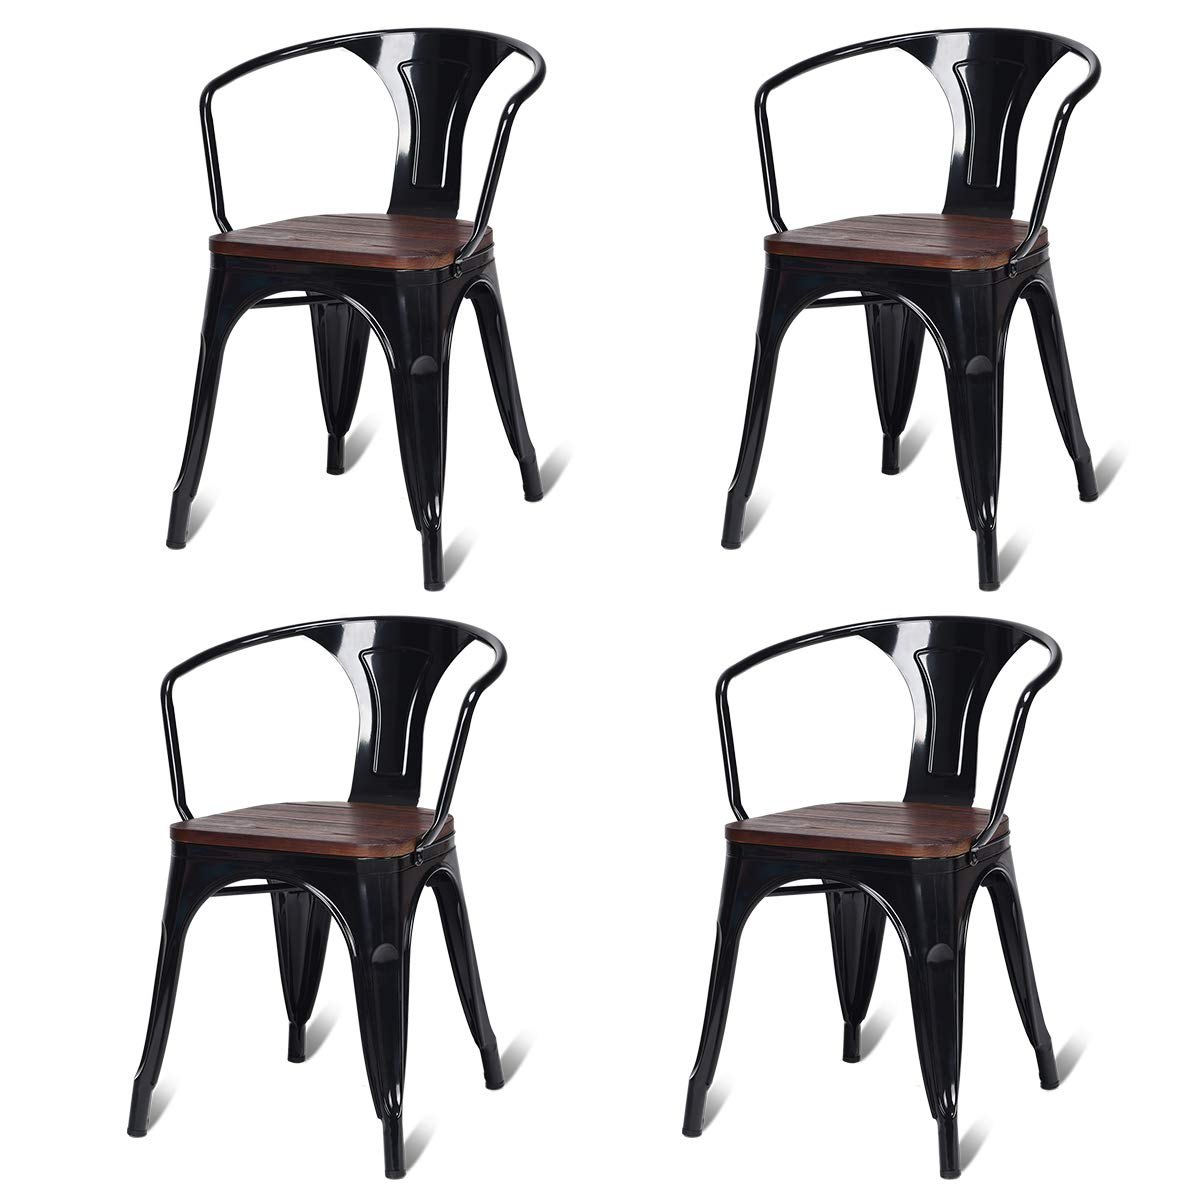 Tenney 3 Piece Counter Height Dining Sets Within Best And Newest Amazon: Costway Tolix Style Dining Chairs Industrial Metal (View 19 of 25)